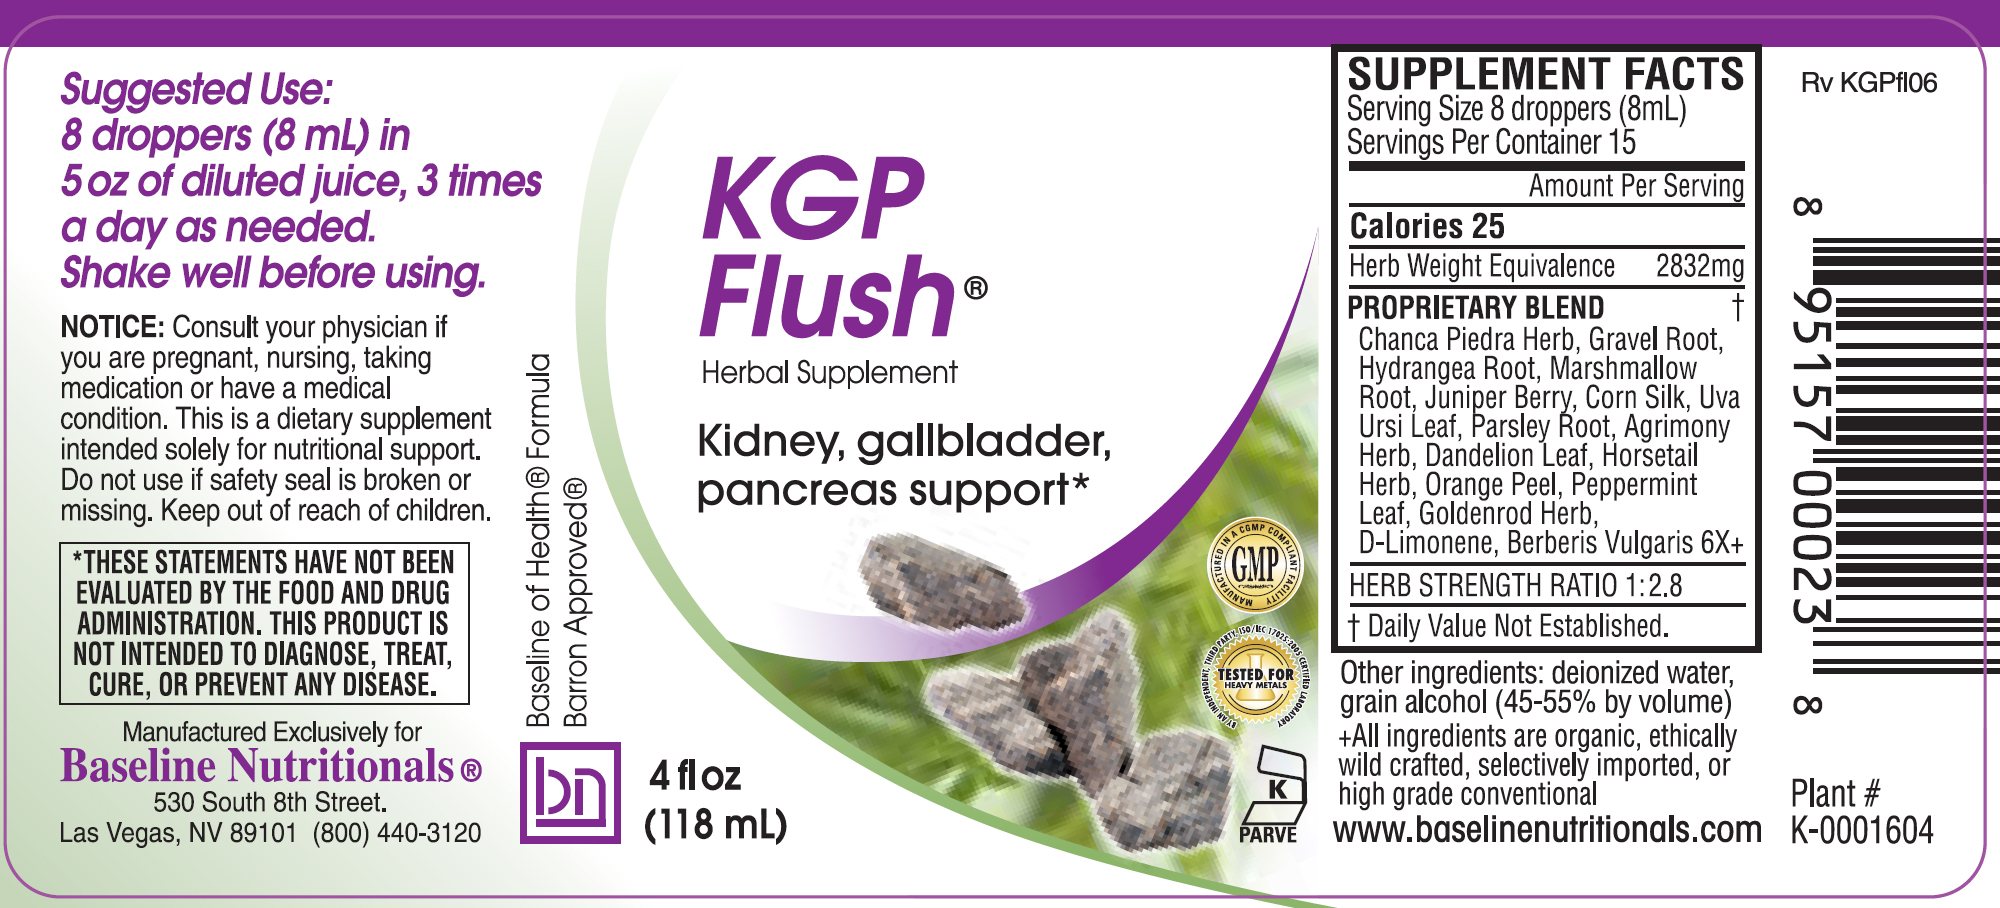 KGP-Flush label